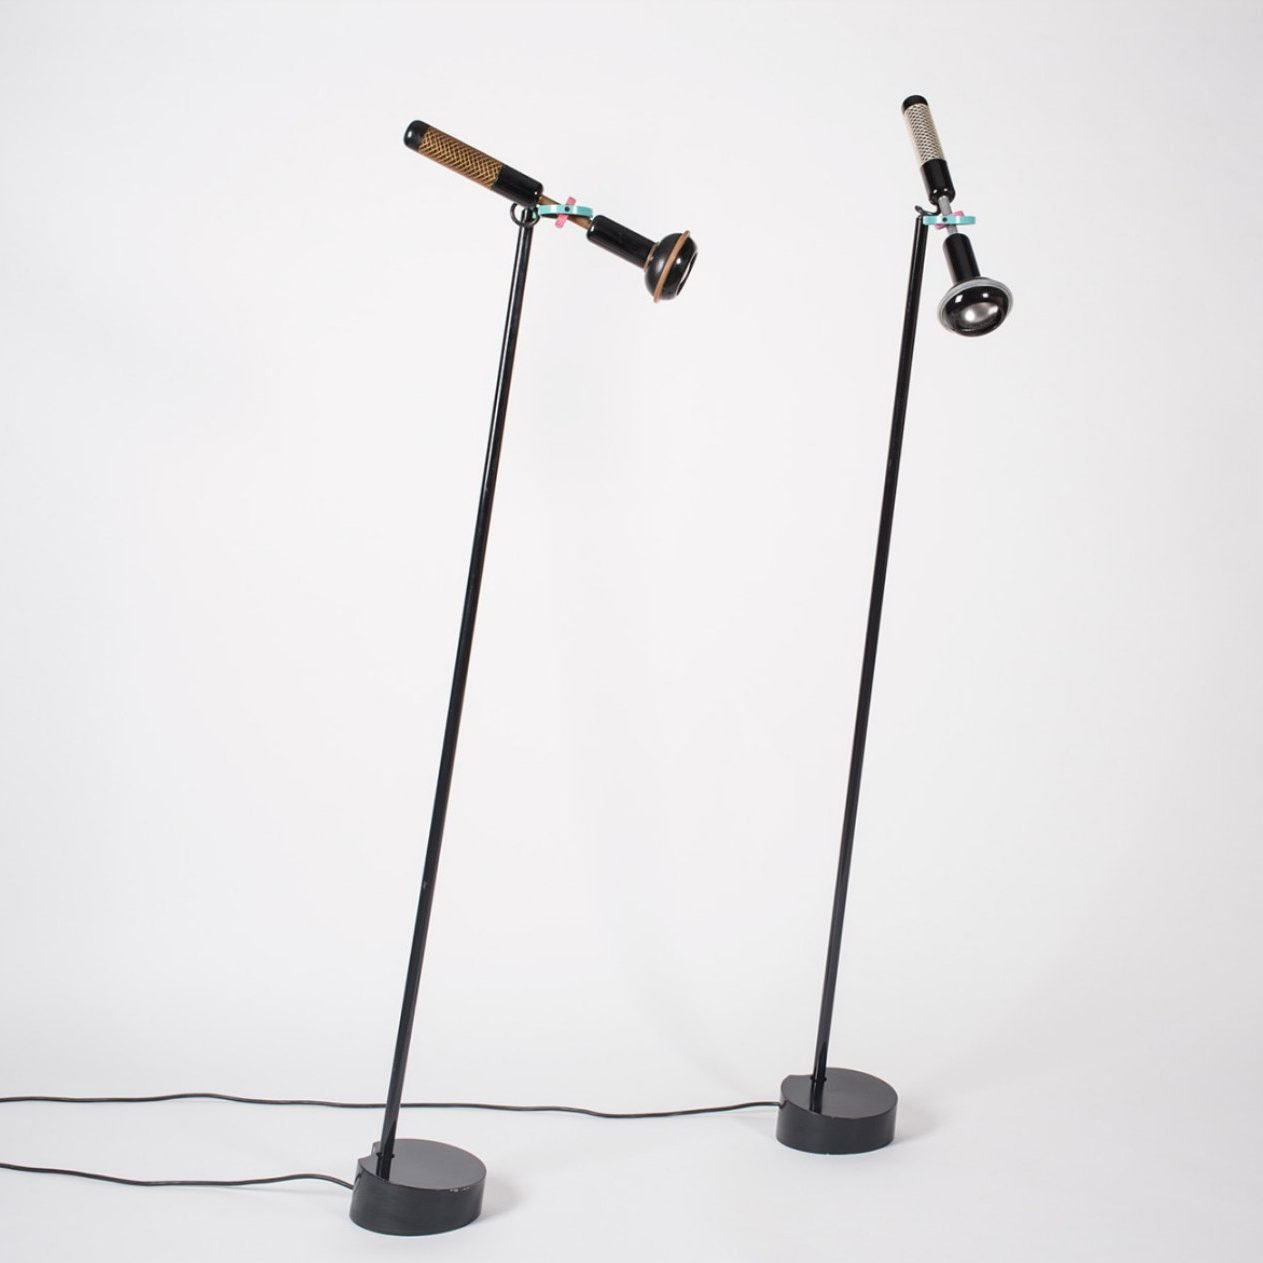 Two Flos Grip floor lamps by designed by Achille Castiglioni at Italian design and furniture gallery Casati Gallery